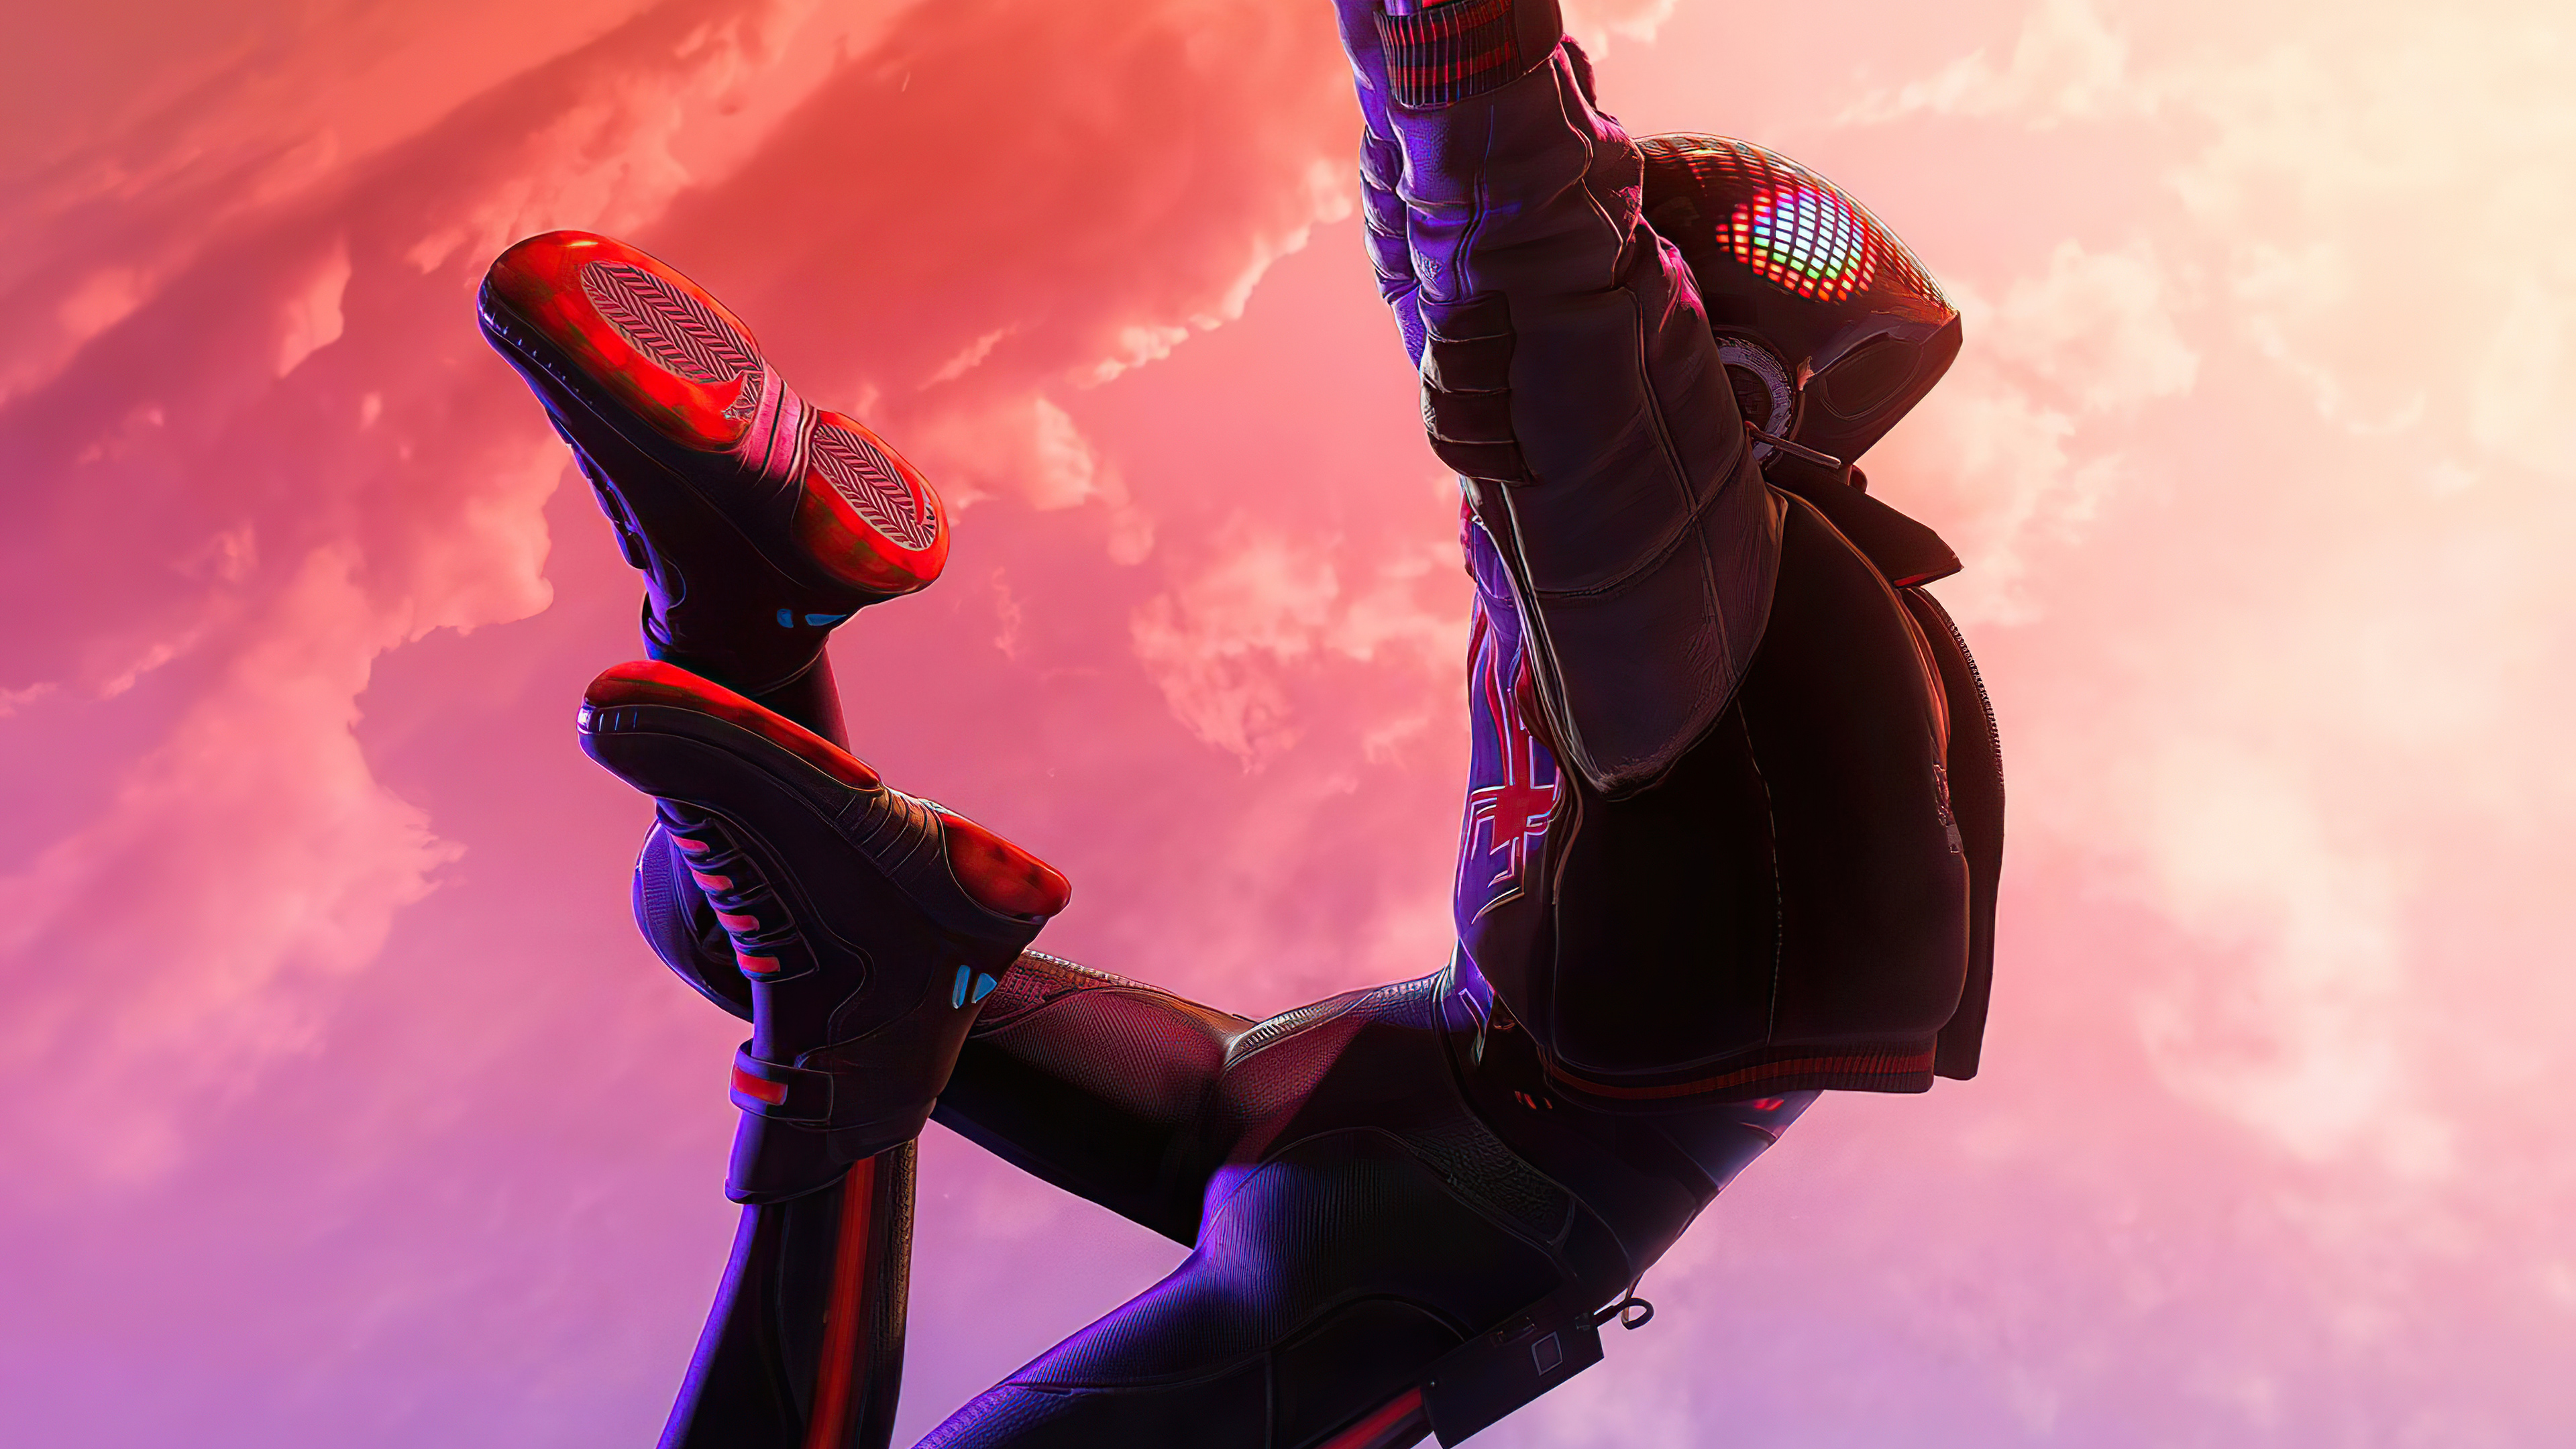 Wallpaper Spiderman Miles Morales hanging from spiderweb